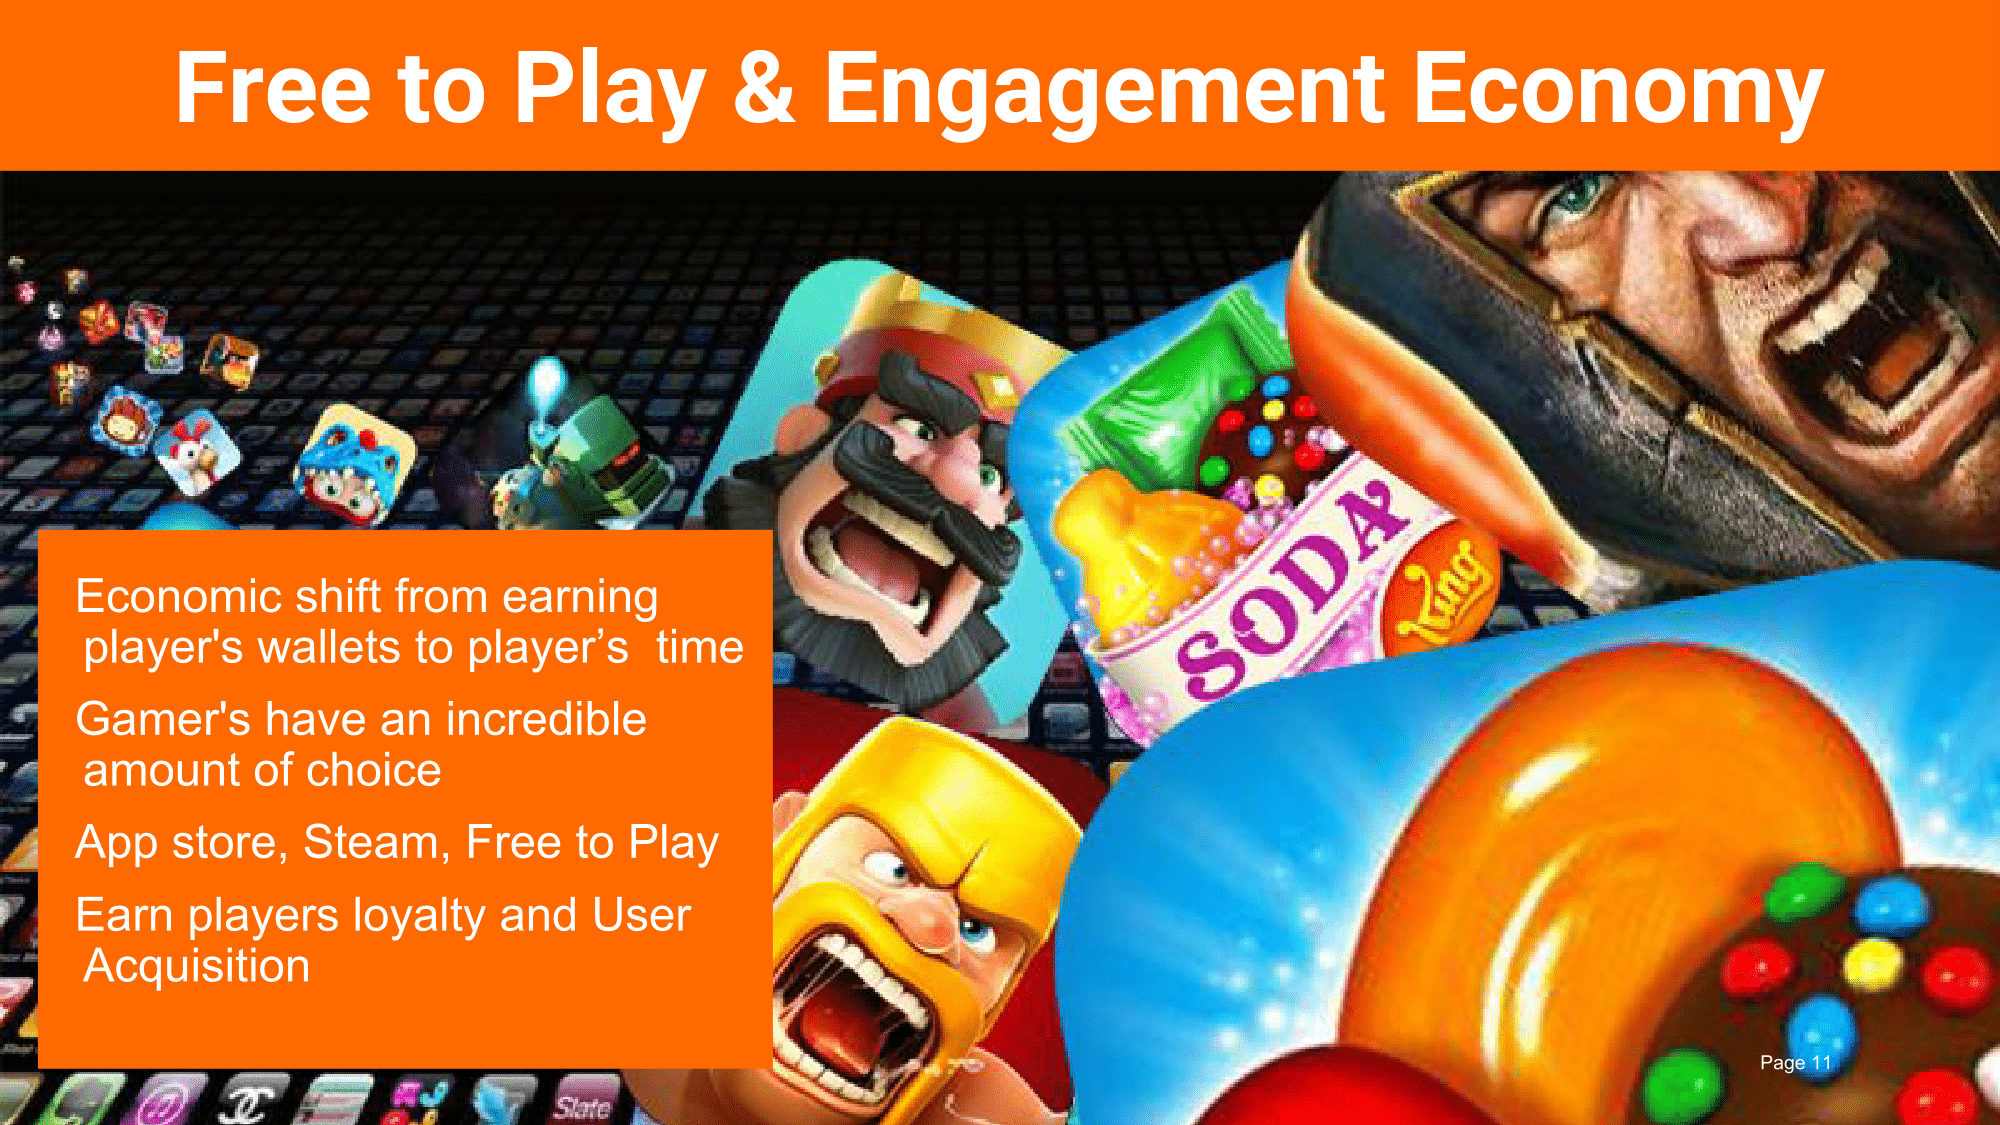 More than anything, the Free to Play model has transformed how games are experienced as games and products are making an economic shift towards an engagement economy.  Developers now compete over earning a player's time rather than a $60 price tag and must compete against a sea of other titles as players have an incredible amount of choice.